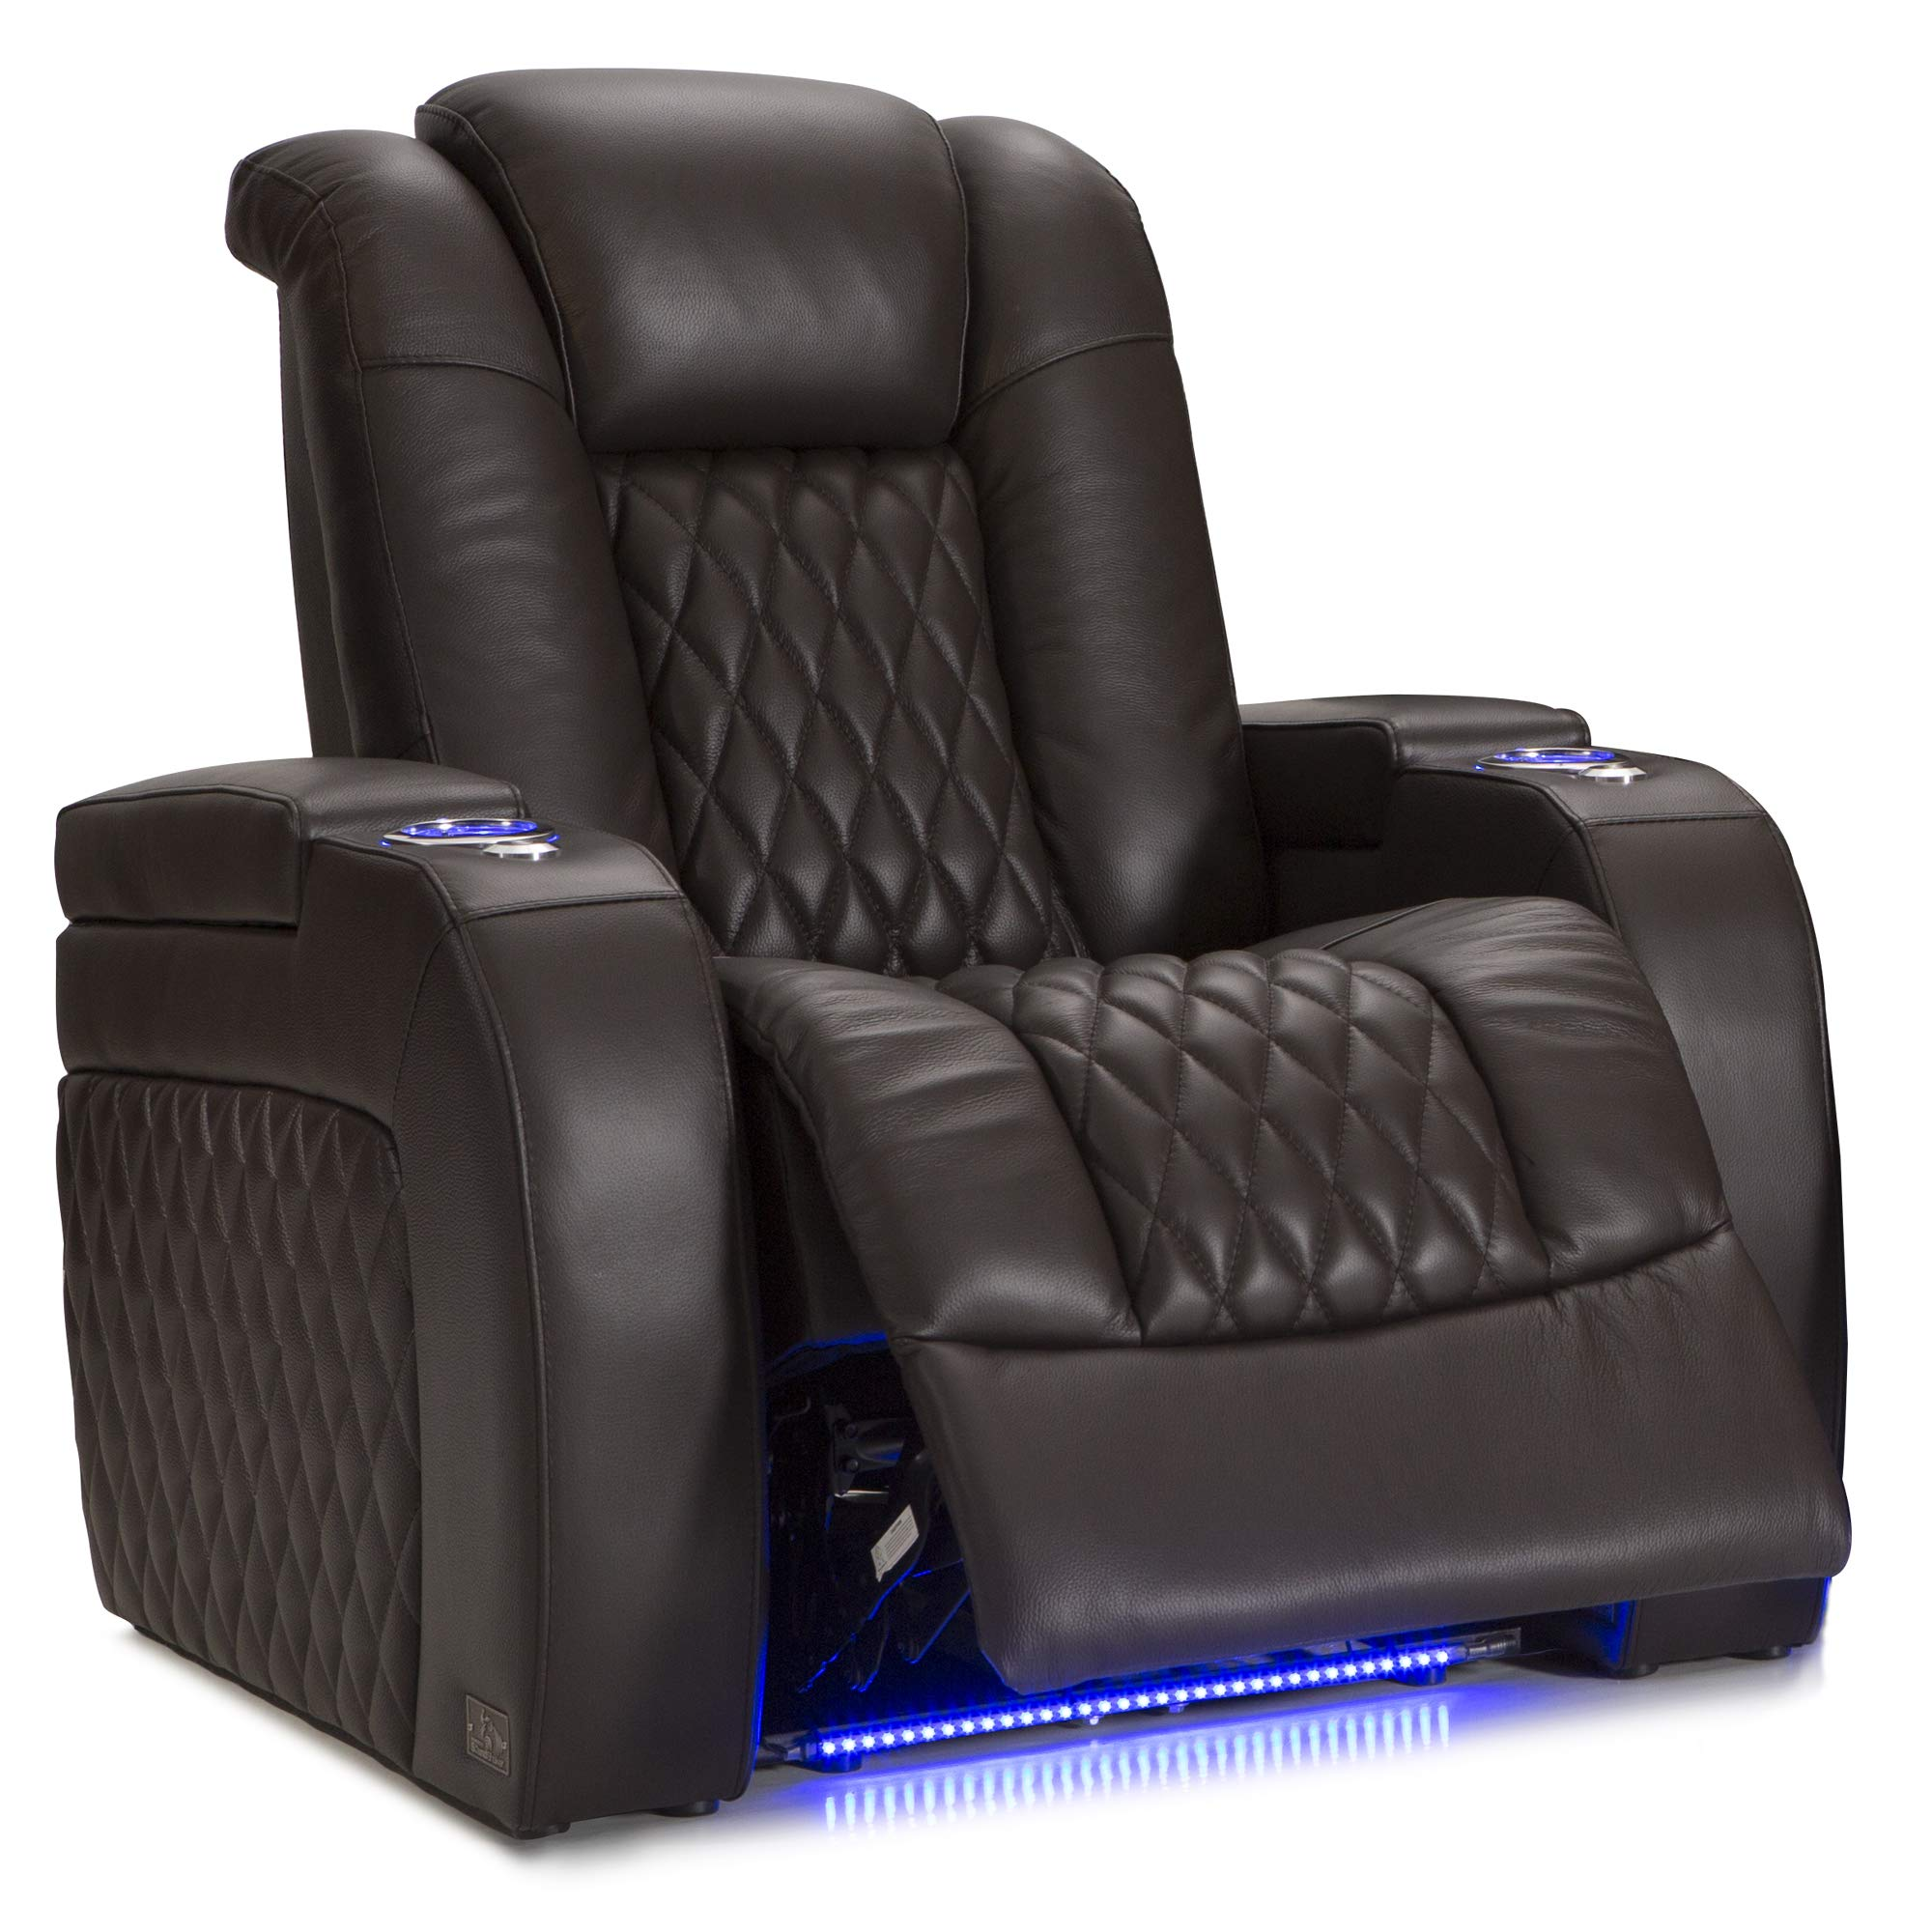 Seatcraft Diamante - Home Theater Seating - Power Recliner - Leather - Adjustable Powered Headrests - Cup Holders - USB Charging - SoundShaker - Ambient Lighting - Wall Hugger - Brown by Seatcraft